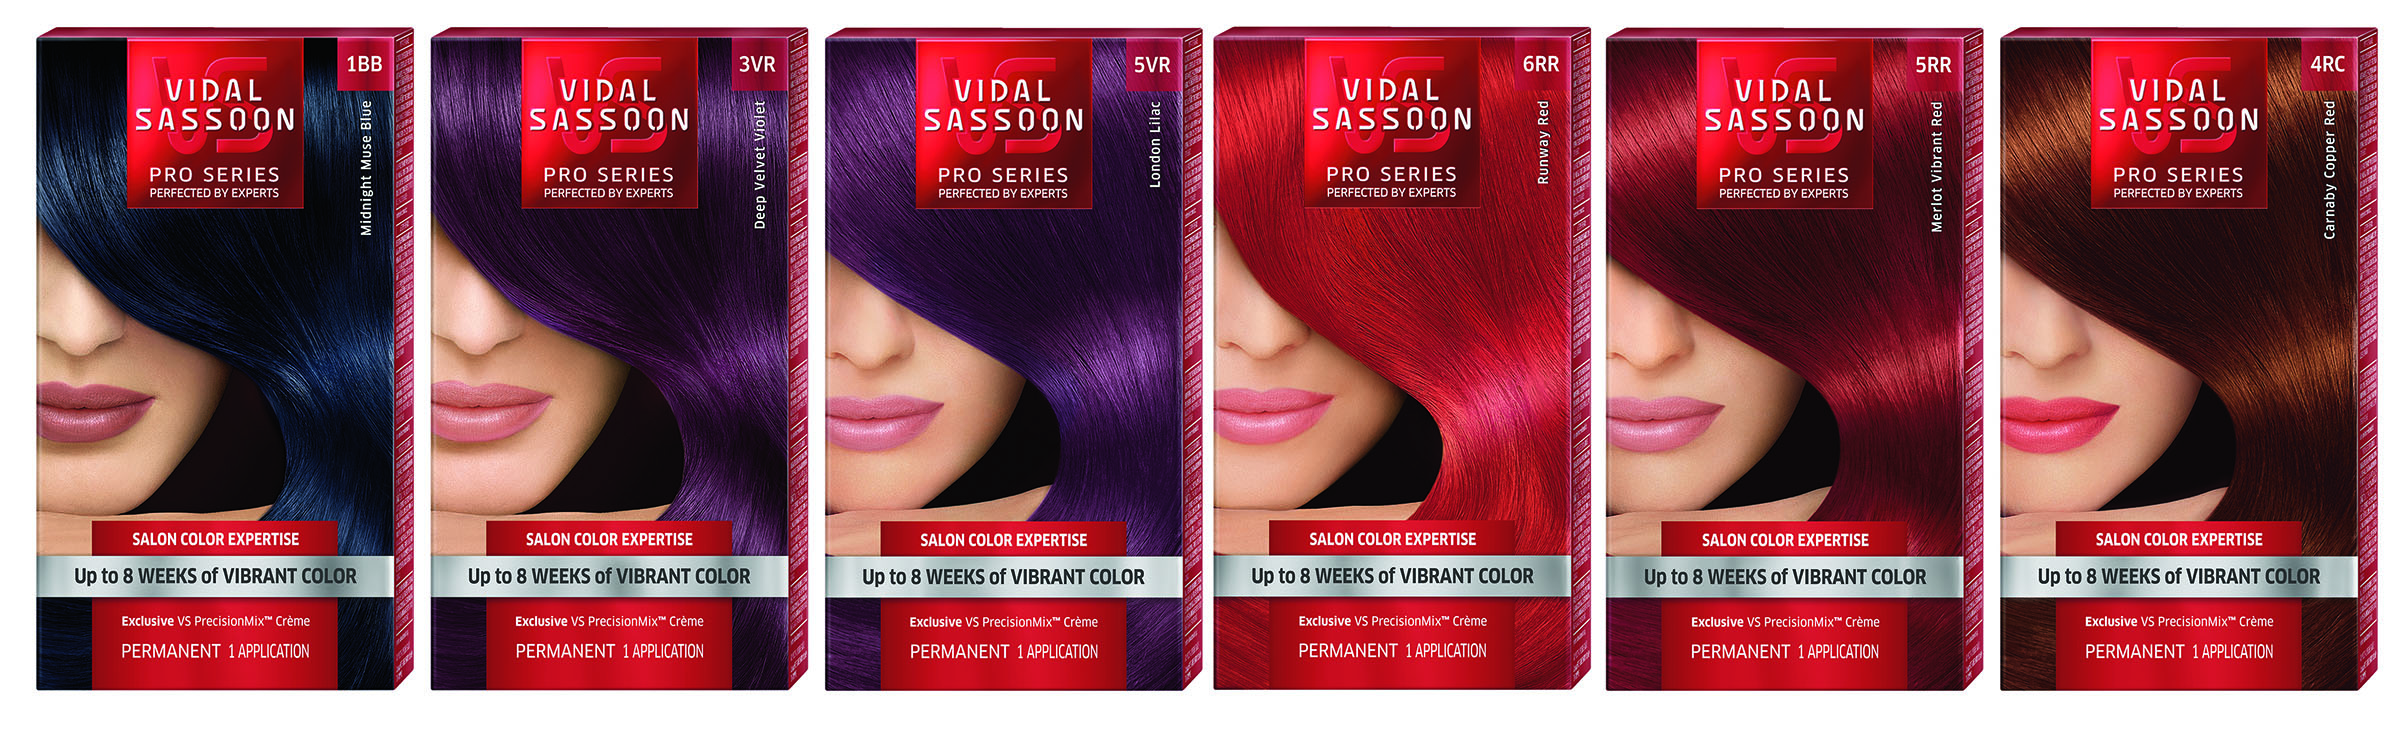 Vidal Sassoon Pro Series London Luxe Collection